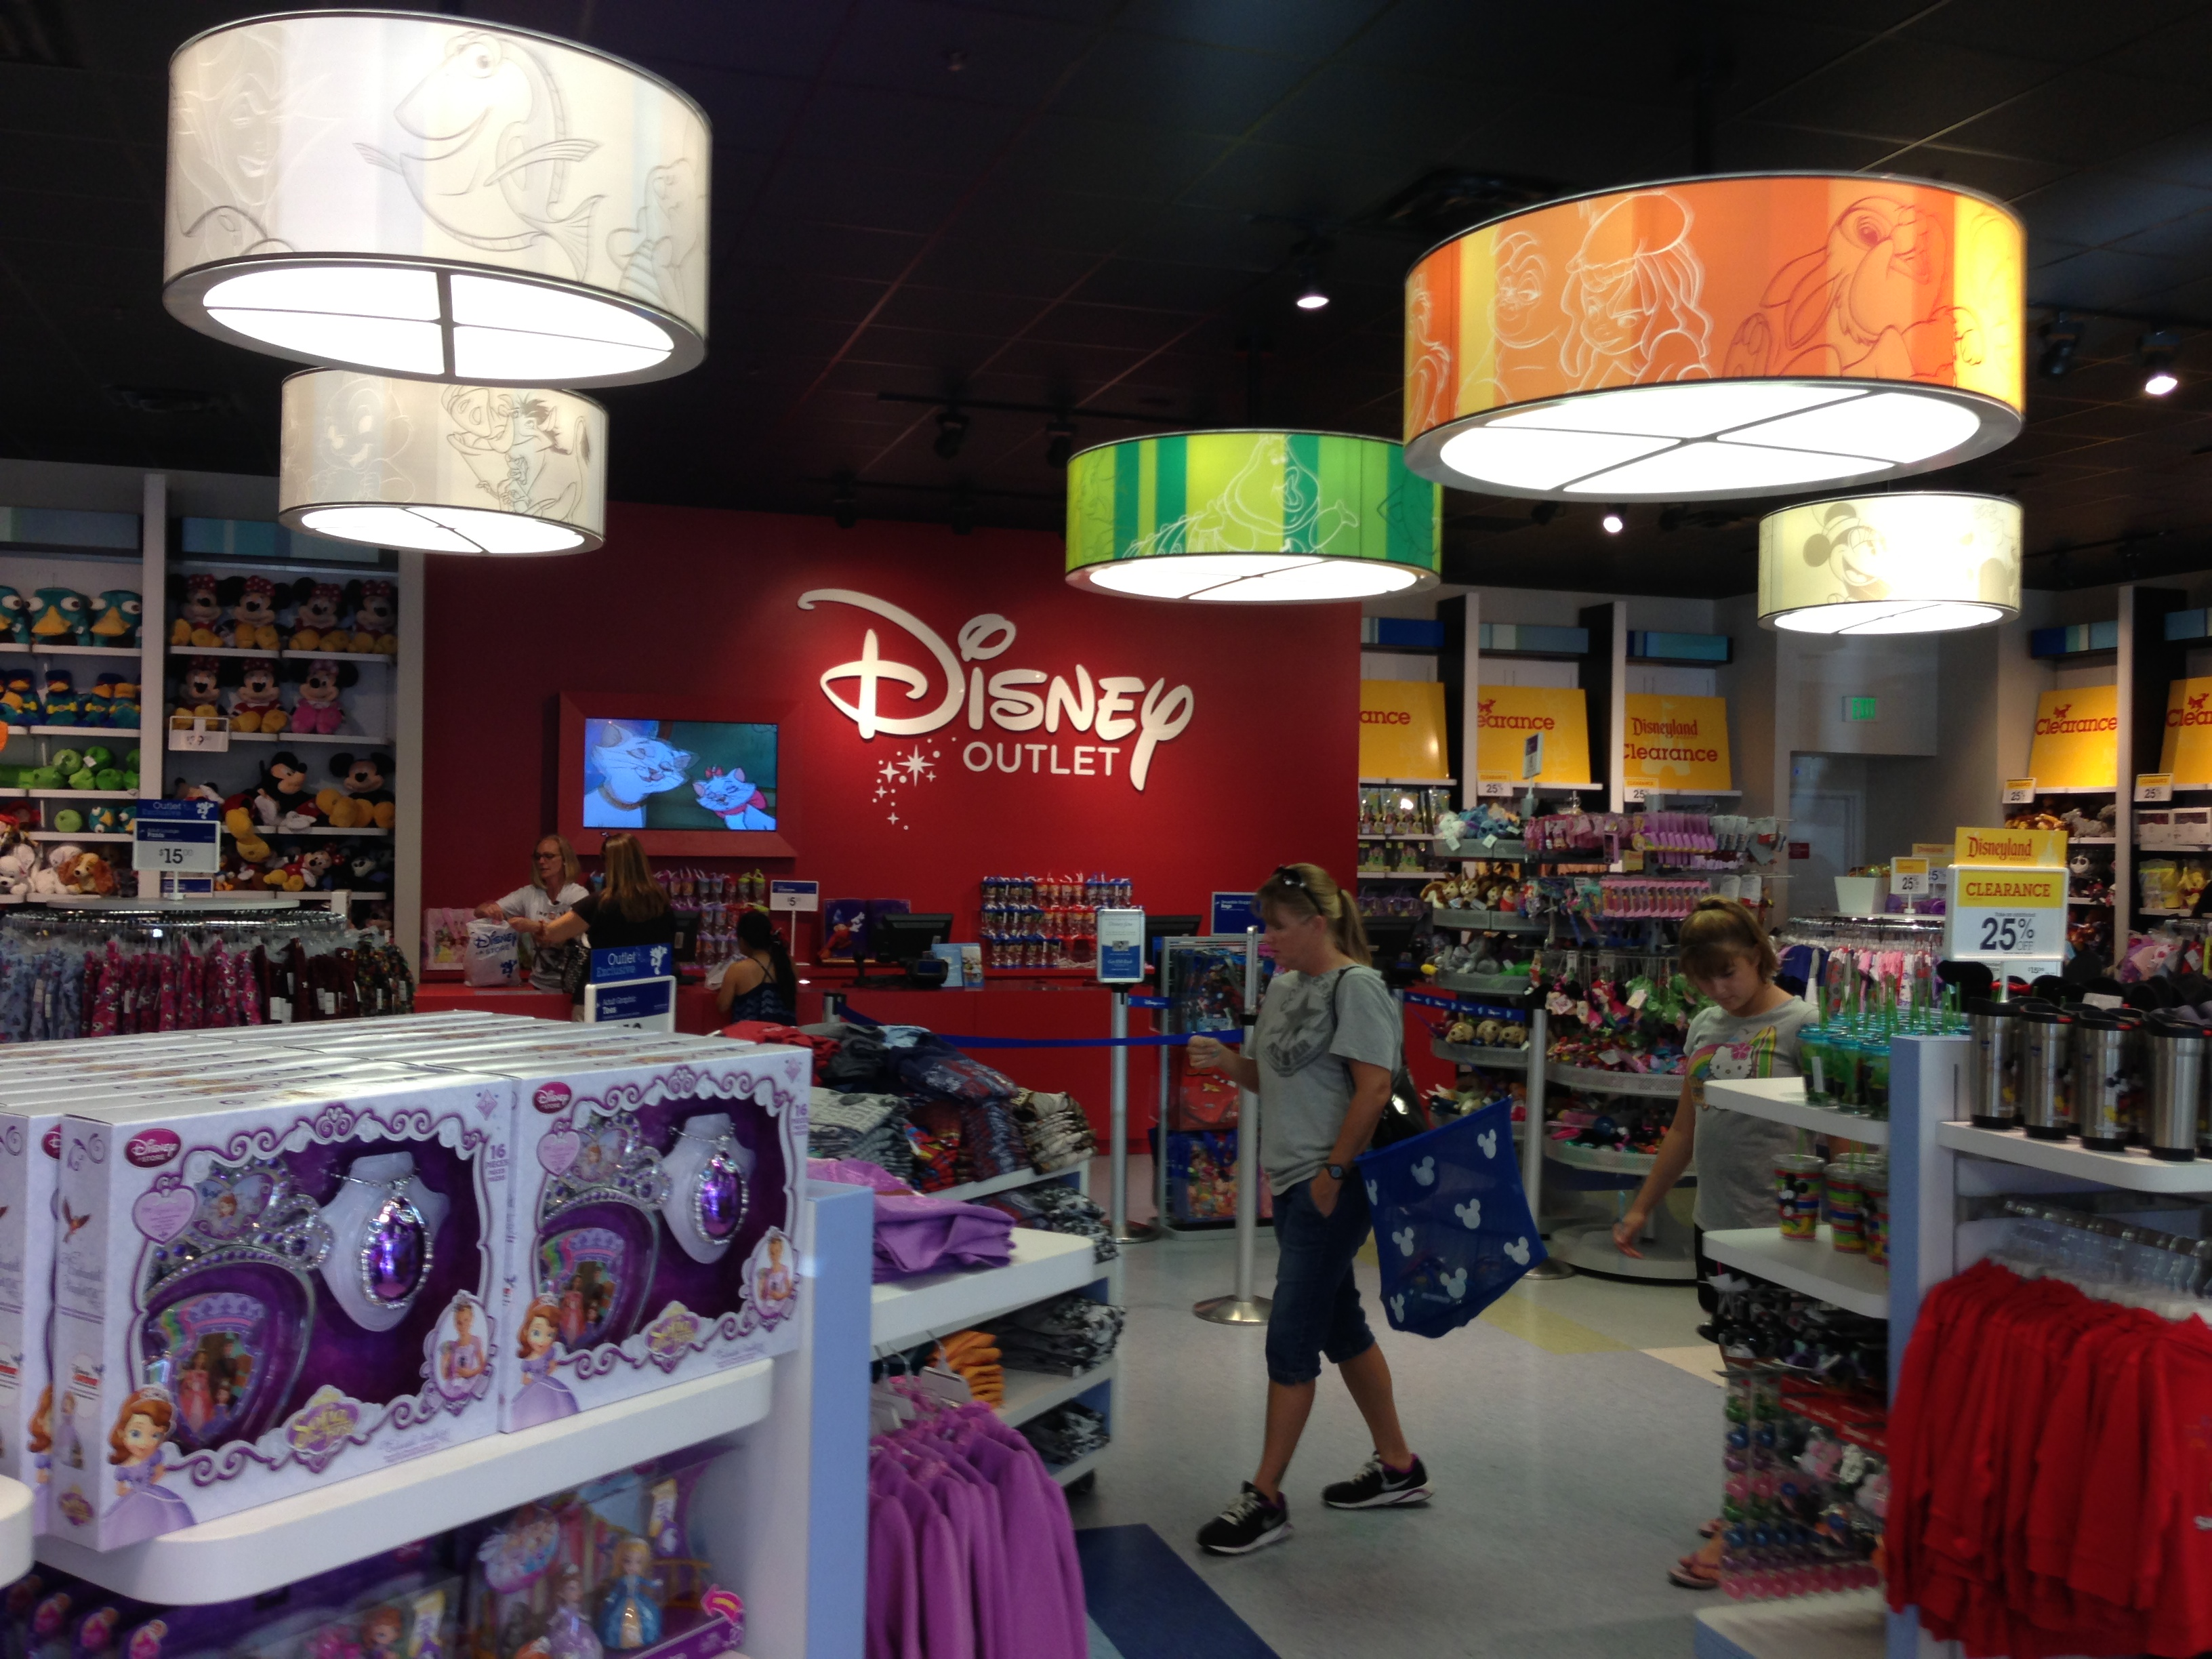 Find Disney Store Outlet Locations * Store locations can change frequently. Please check directly with the retailer for a current list of locations before your visit.